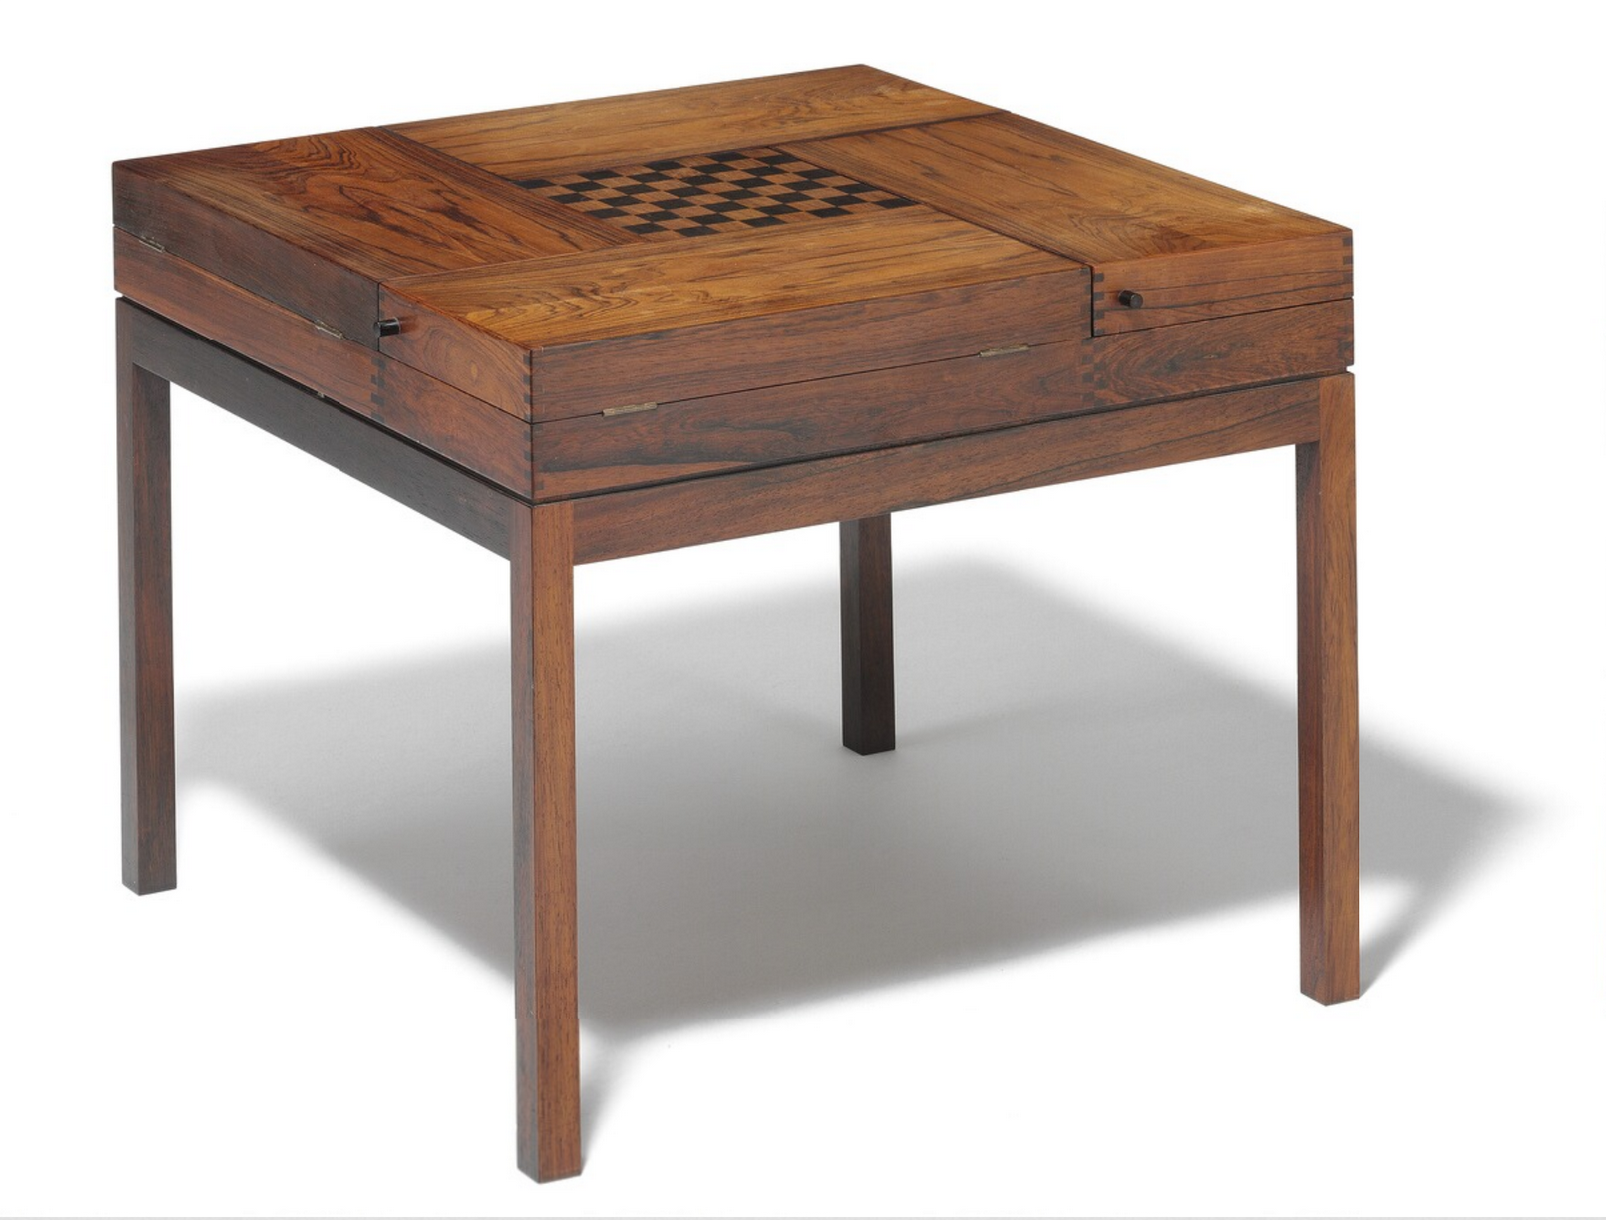 Four In One Game Table #40 - Ejner Larsen, Aksel Bender Madsen: A Square Tobacco/games Table Of Rosewood.